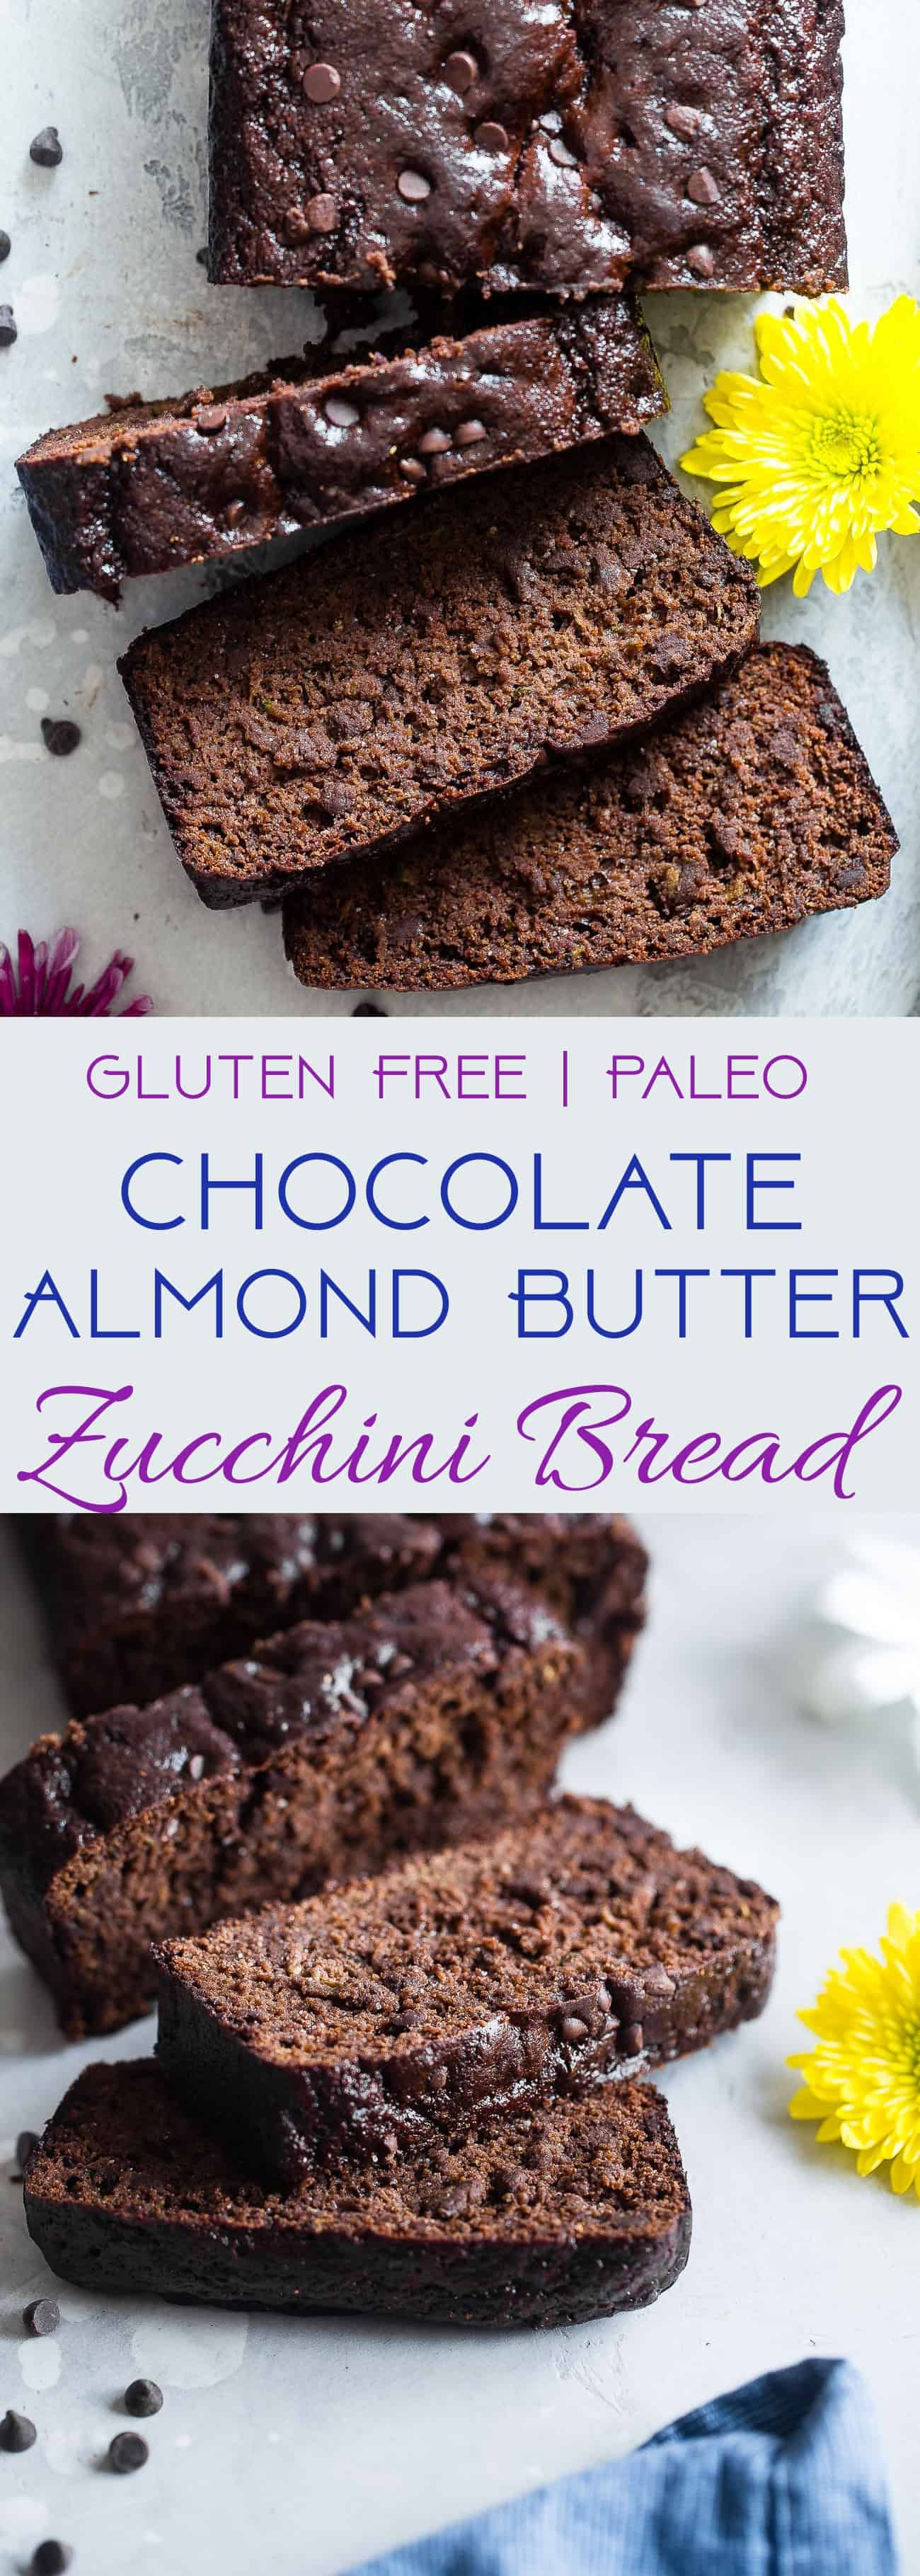 Easy Chocolate Paleo Zucchini Bread - This gluten free zucchini bread is secretly packed with protein and collagen to support healthy skin and bones! It's a healthy, breakfast or snack for kids and adults, and freezes great! | #Foodfaithfitness | #FoodFaithFit | #Paleo #Glutenfree #Collagen #Chocolate #Healthy #healthyskin